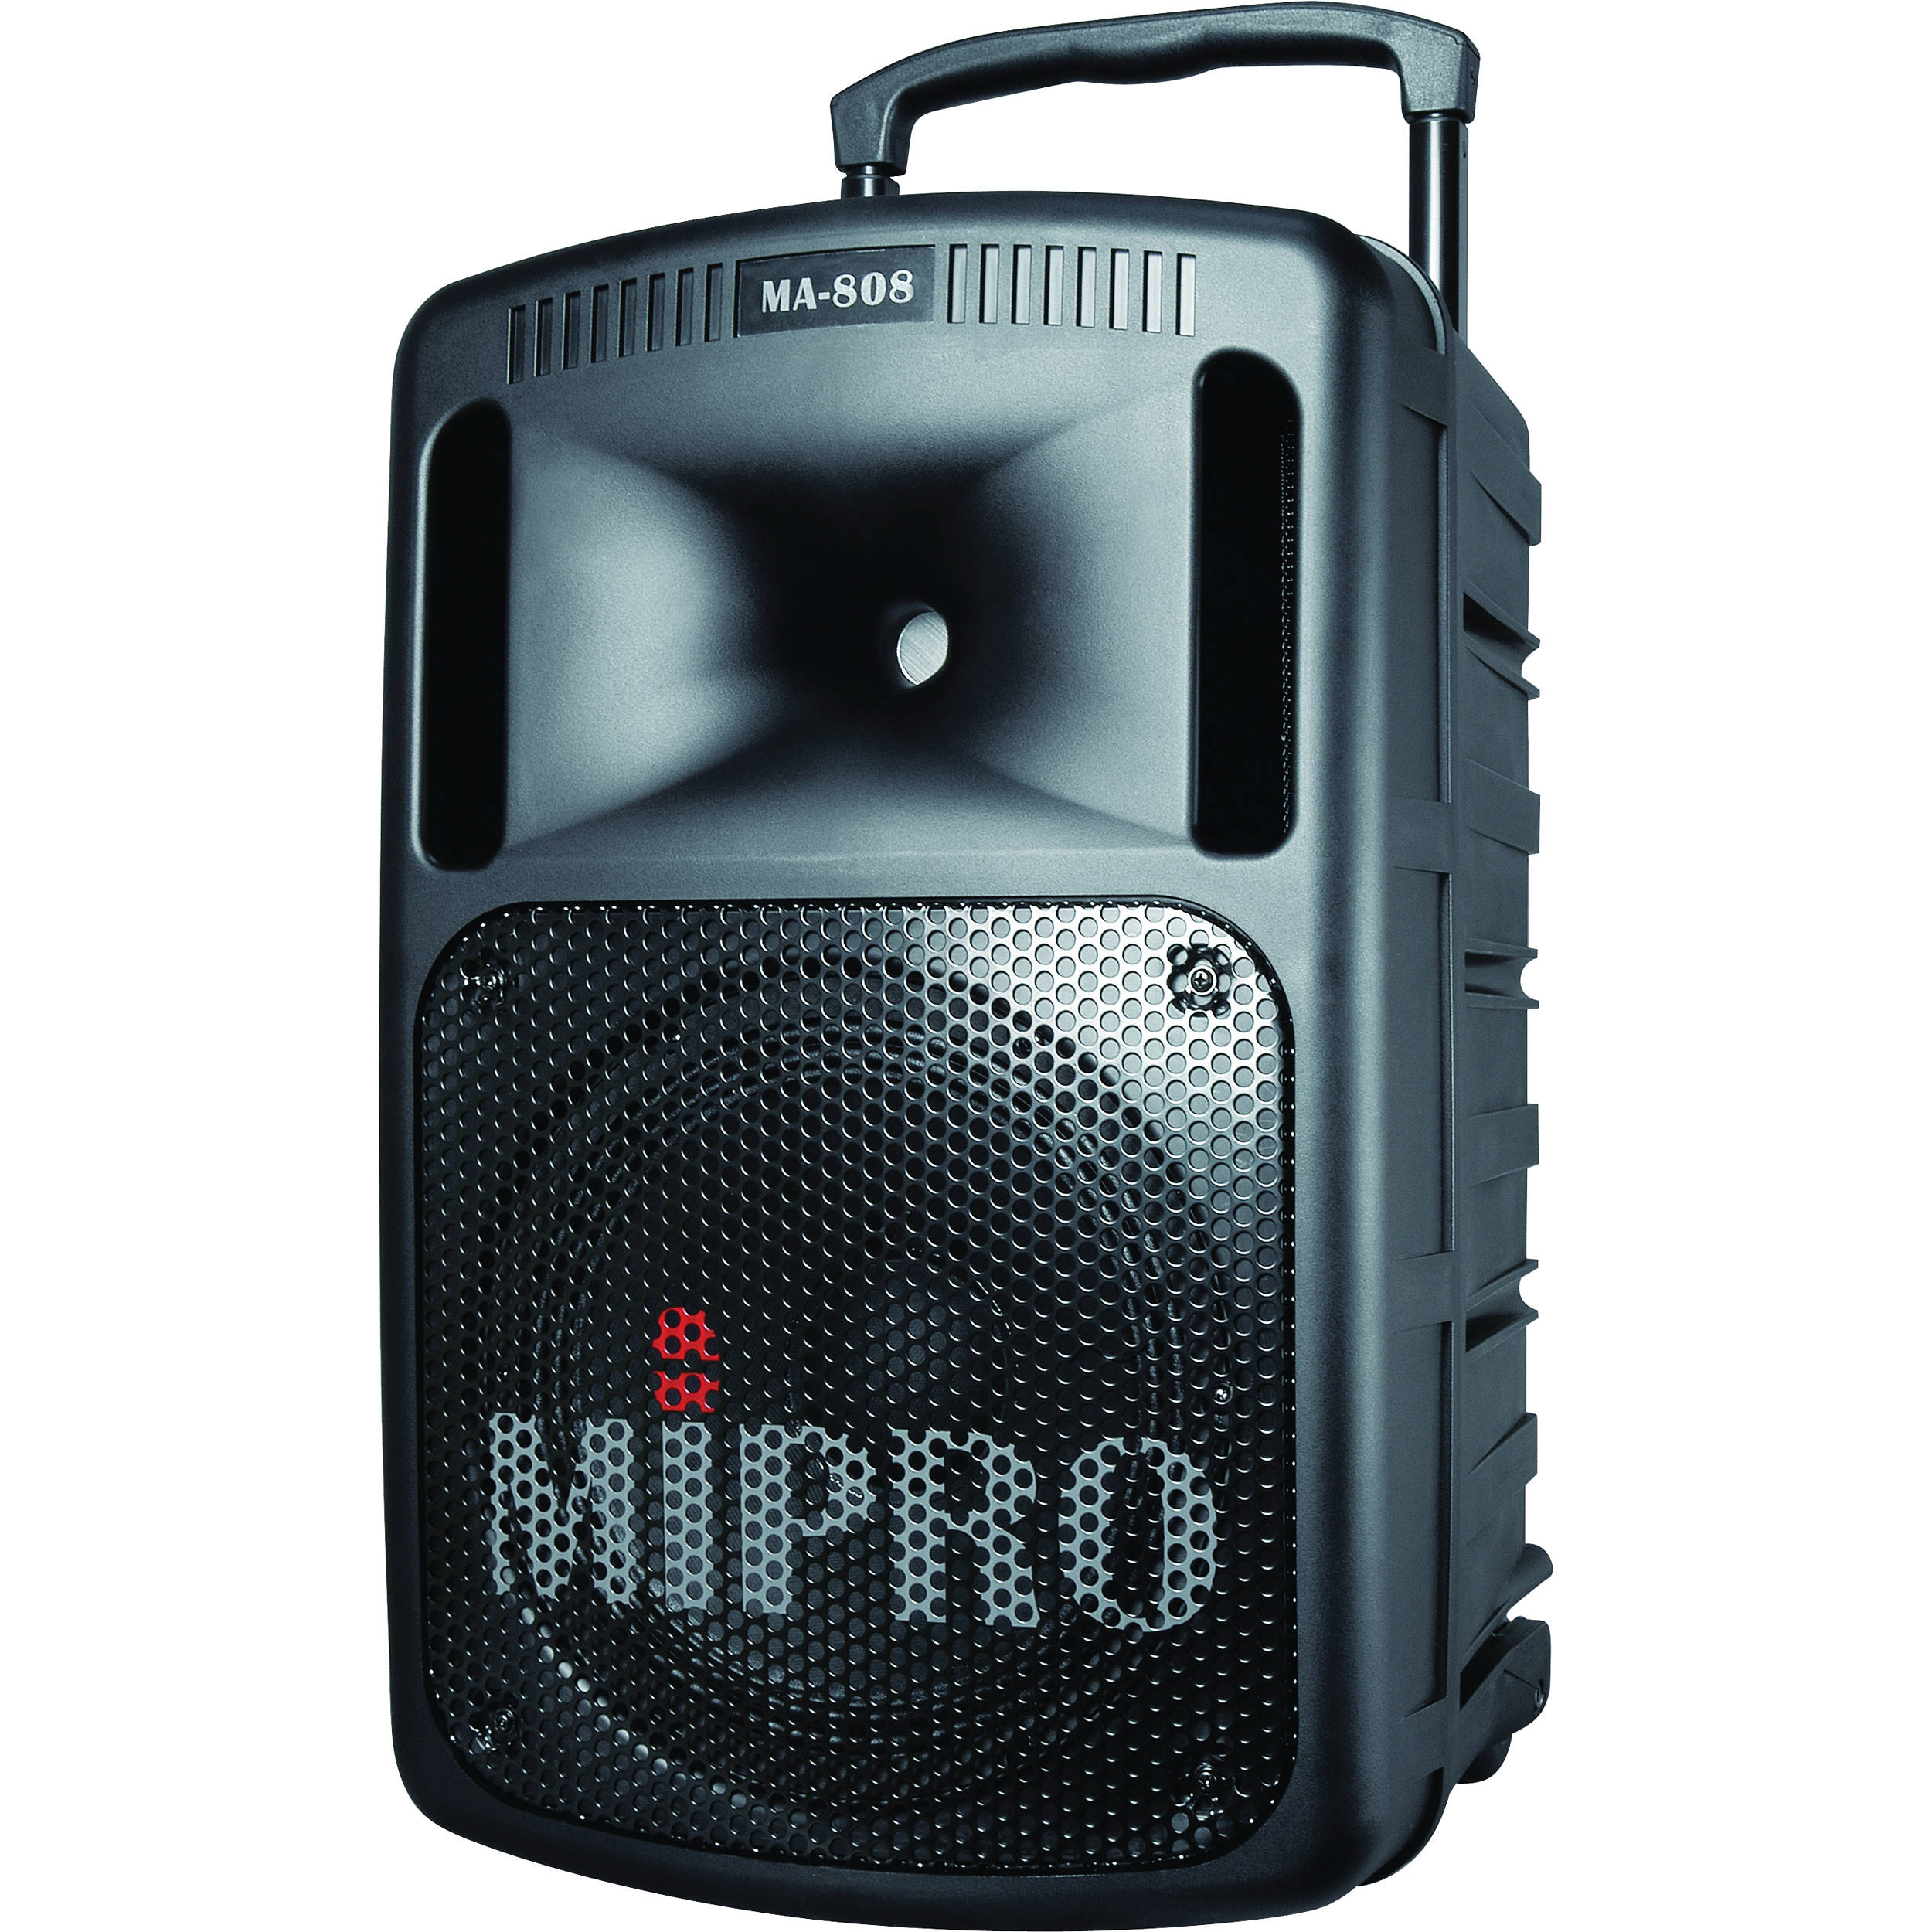 Mipro Ma 808 Portable Rechargeable Wireless Pa Ma808padma Bh System Wiring Diagram With Cd Player 267